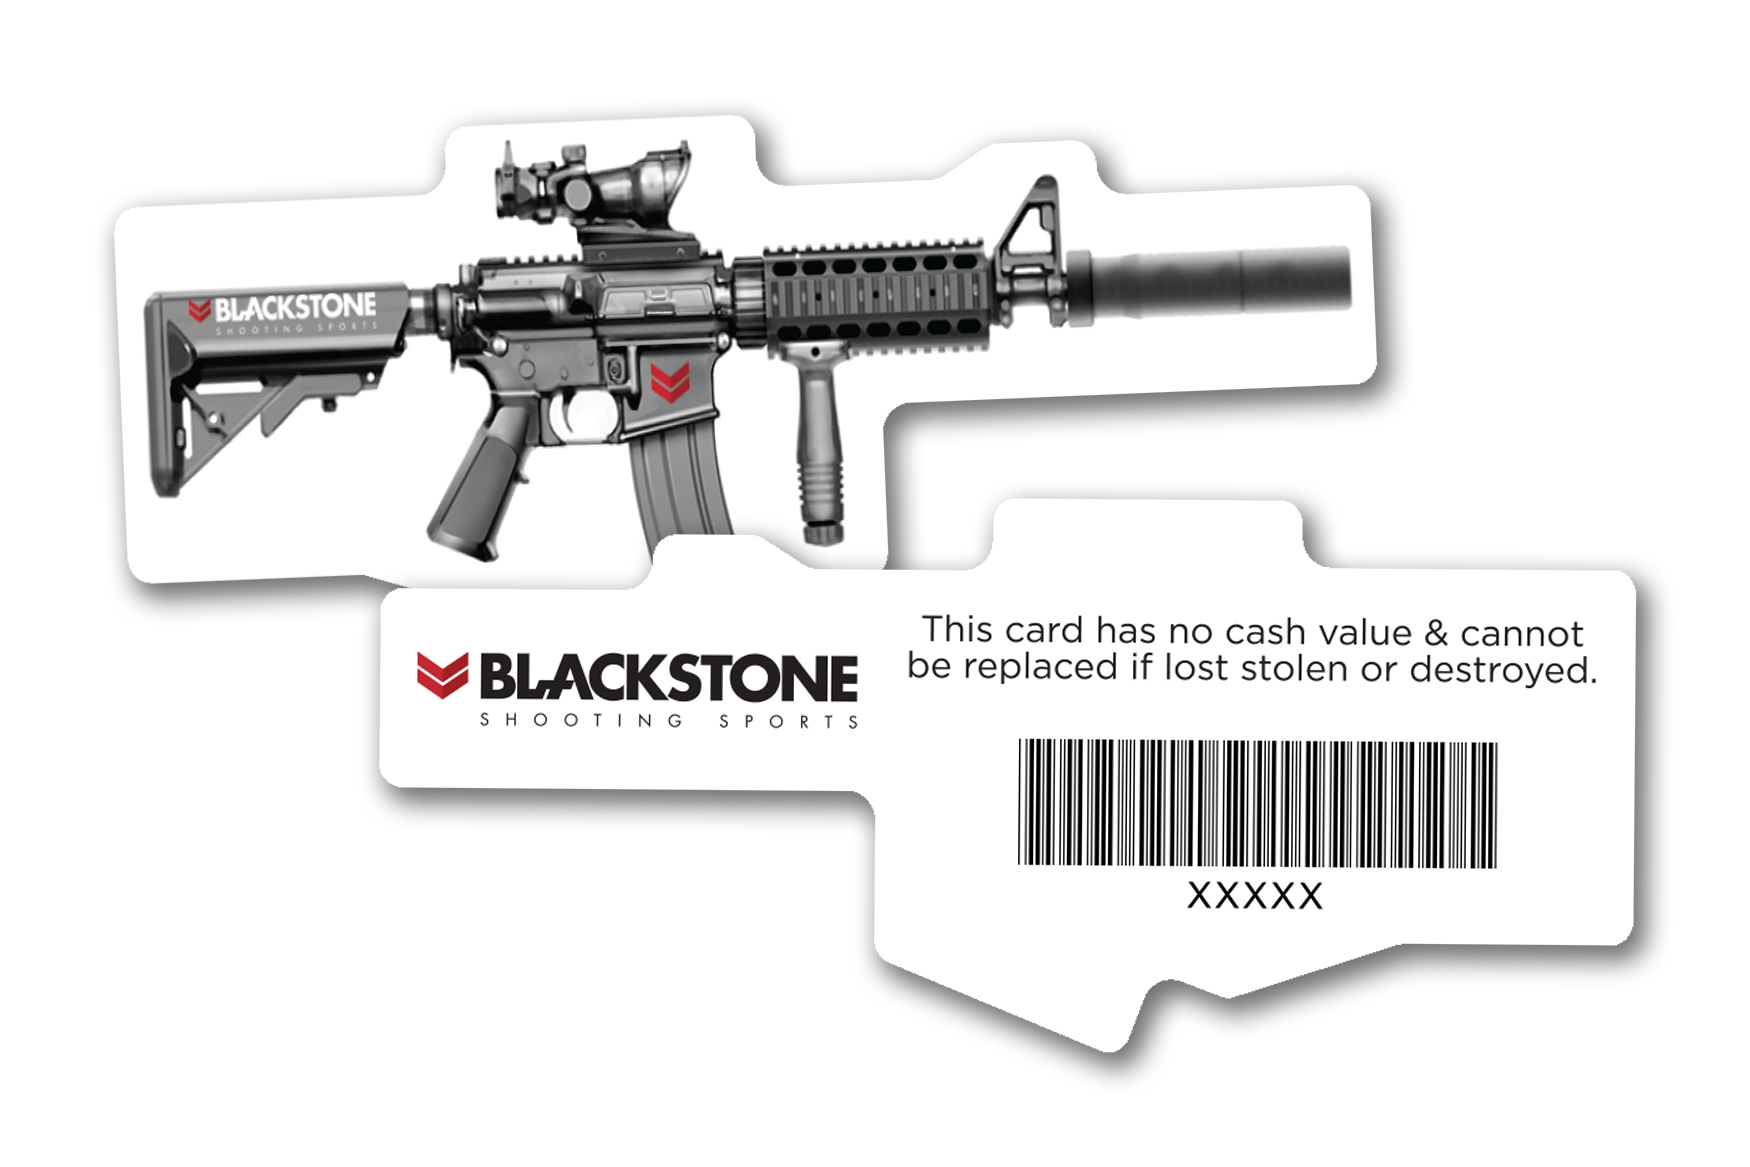 Die cut custom shaped gift cards for gun and shooting range businesses